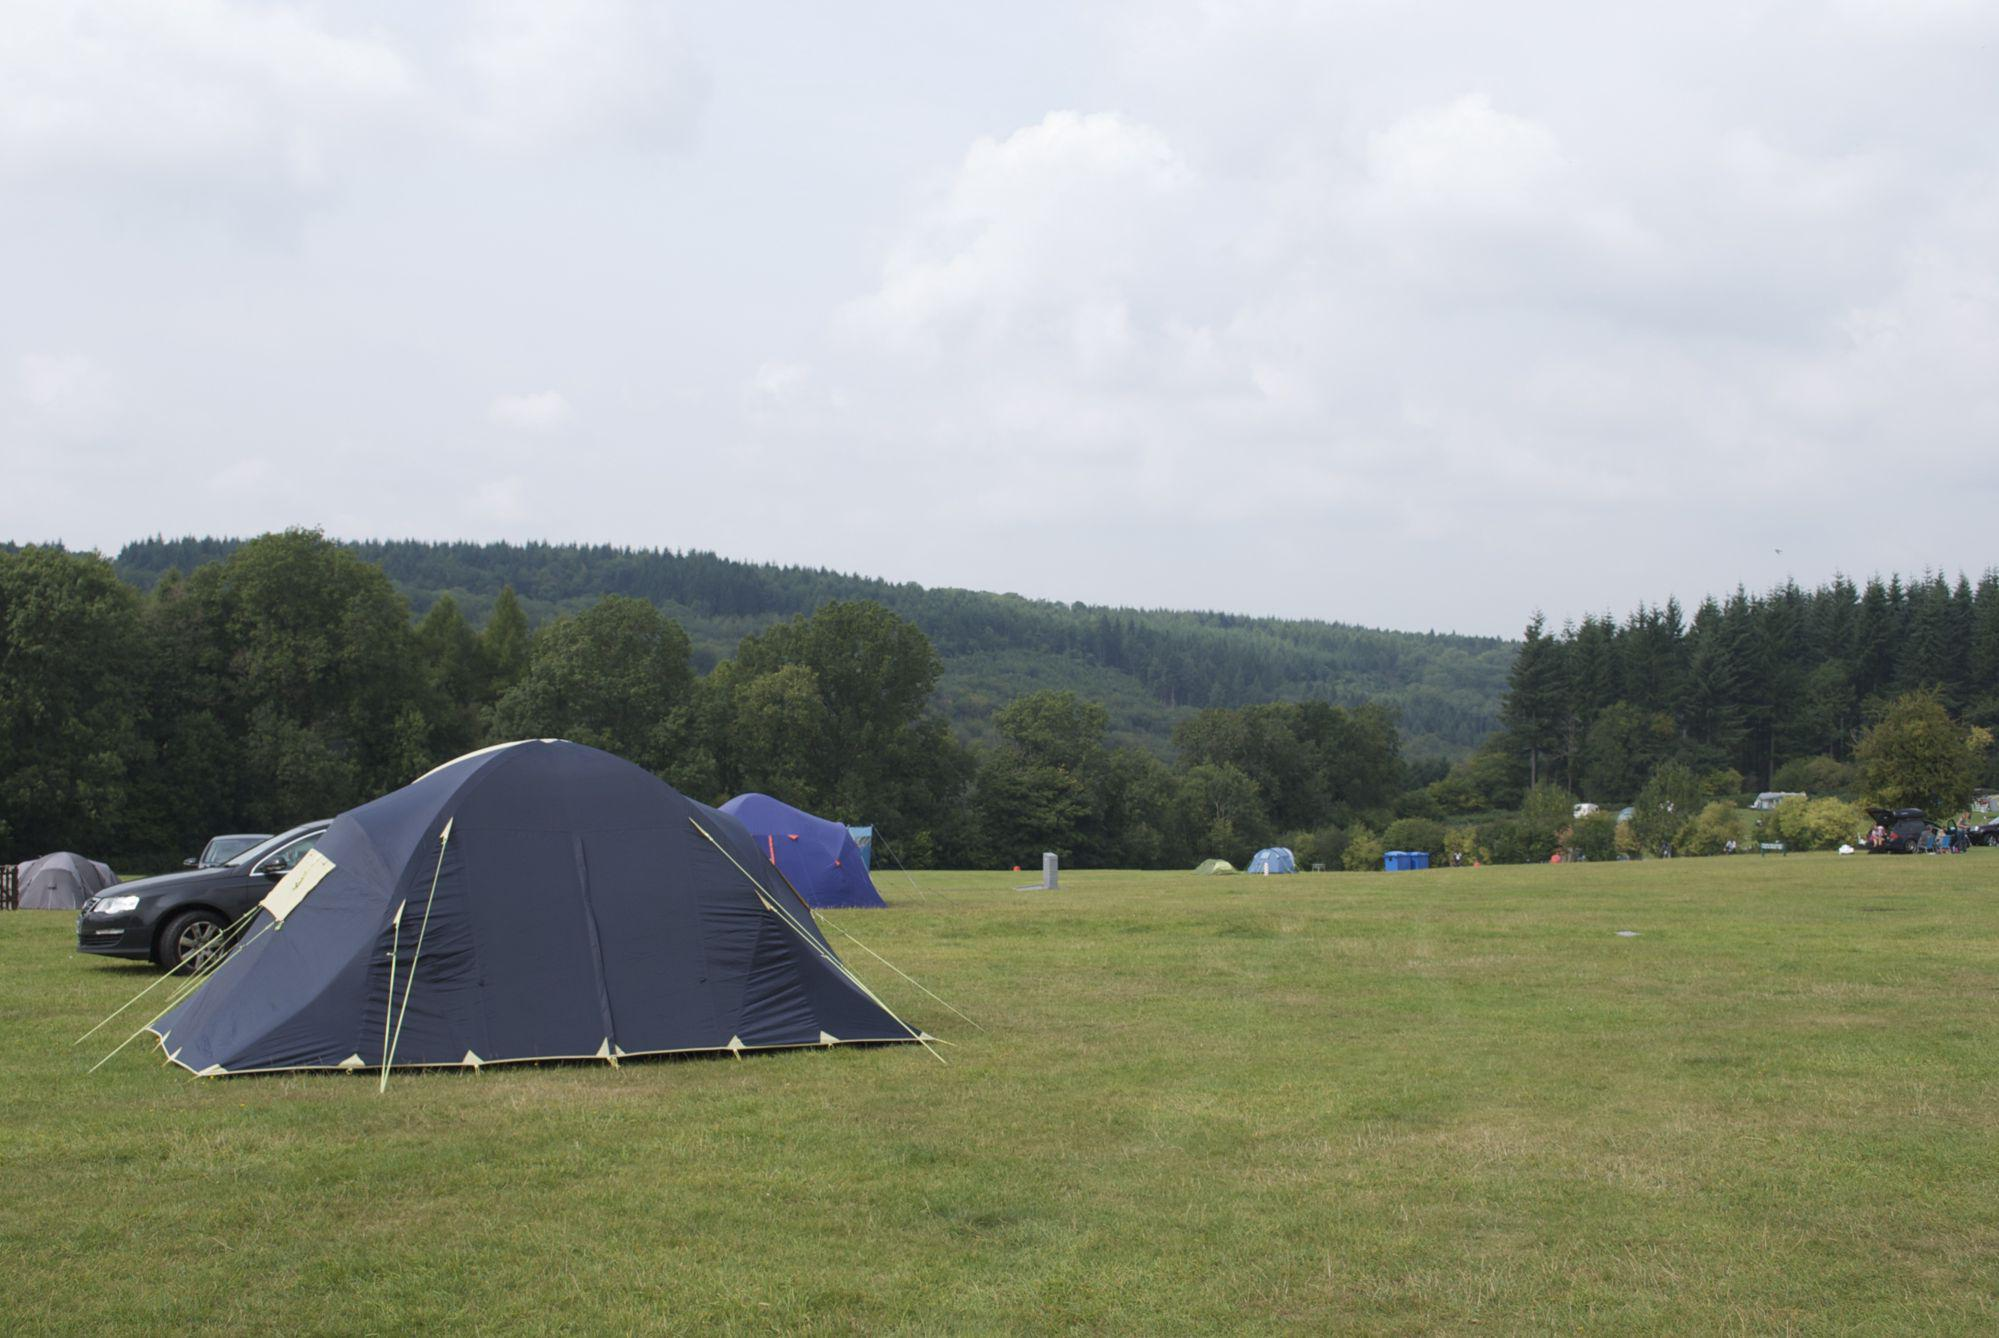 Coleford Camping   Campsites in Coleford, Gloucestershire